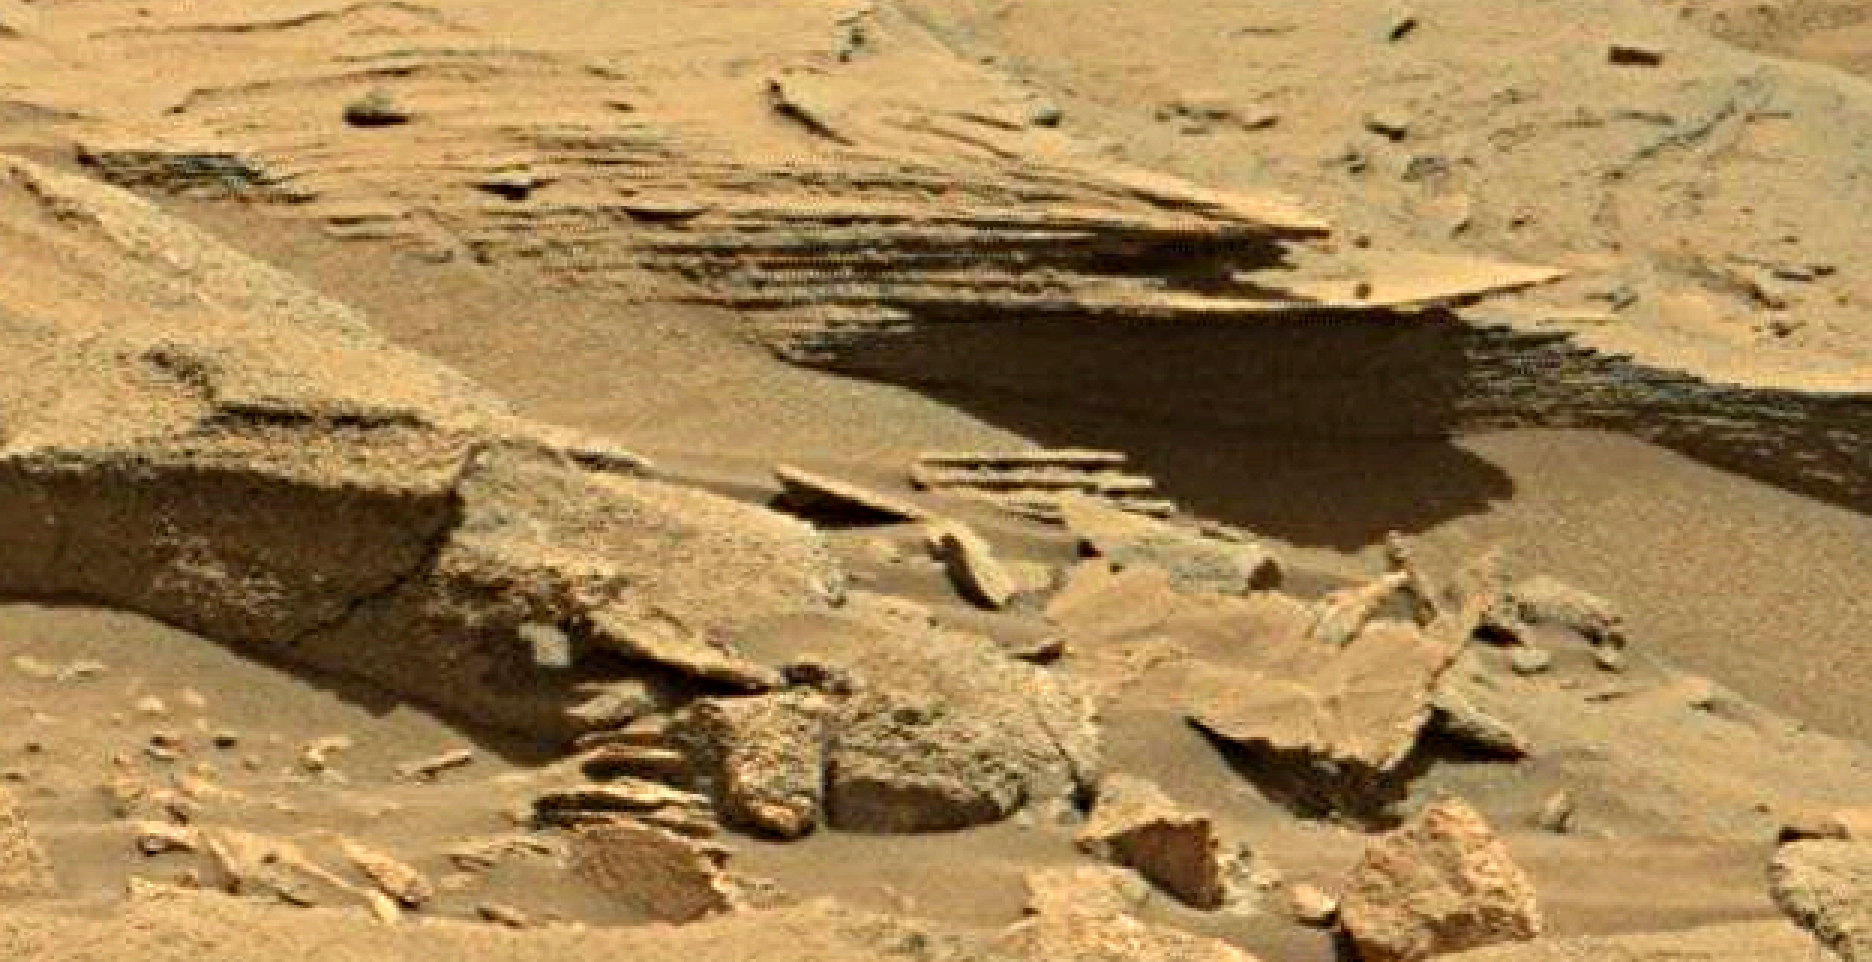 mars sol 1346 anomaly-artifacts 10 was life on mars